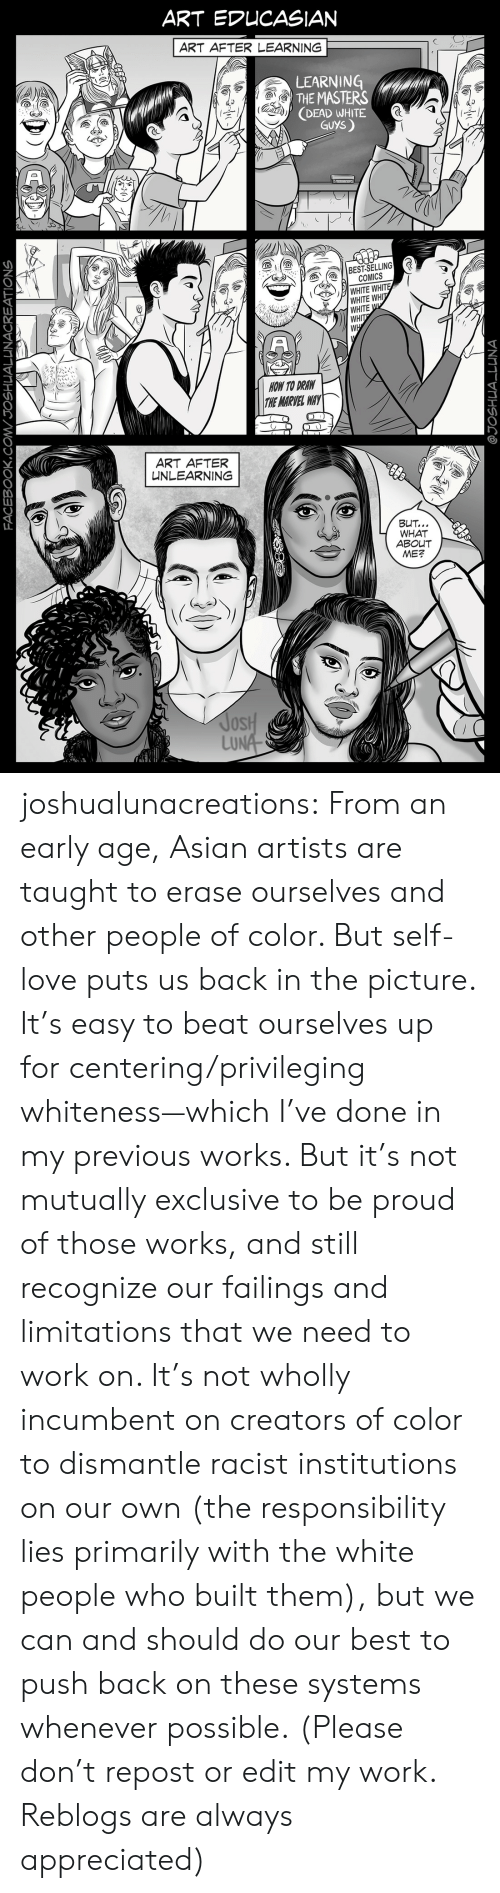 Asian, Love, and Target: ART AFTER LEARNING  LEARNING  THE MASTERS  DEAD WHITE  GUYS  COMICS  WHITE WHIT  WHITE WH  WHITE  WHIT  HOW TO DRAW  HE MARVEL WAY  ART AFTER  NLEARNING  WHAT  ABOUT  ME?  oS  LU joshualunacreations:  From  an early age, Asian artists are taught to erase ourselves and other  people of color. But self-love puts us back in the picture.  It's easy to beat ourselves up for centering/privileging whiteness—which  I've done in my previous works. But it's not mutually exclusive to be  proud of those works, and still recognize our failings and limitations that we need to work on.   It's not wholly incumbent on creators of color to dismantle racist  institutions on our own (the responsibility lies primarily with the  white people who built them), but we can and should do our best to push  back on these systems whenever possible.  (Please don't repost or edit my work. Reblogs are always appreciated)